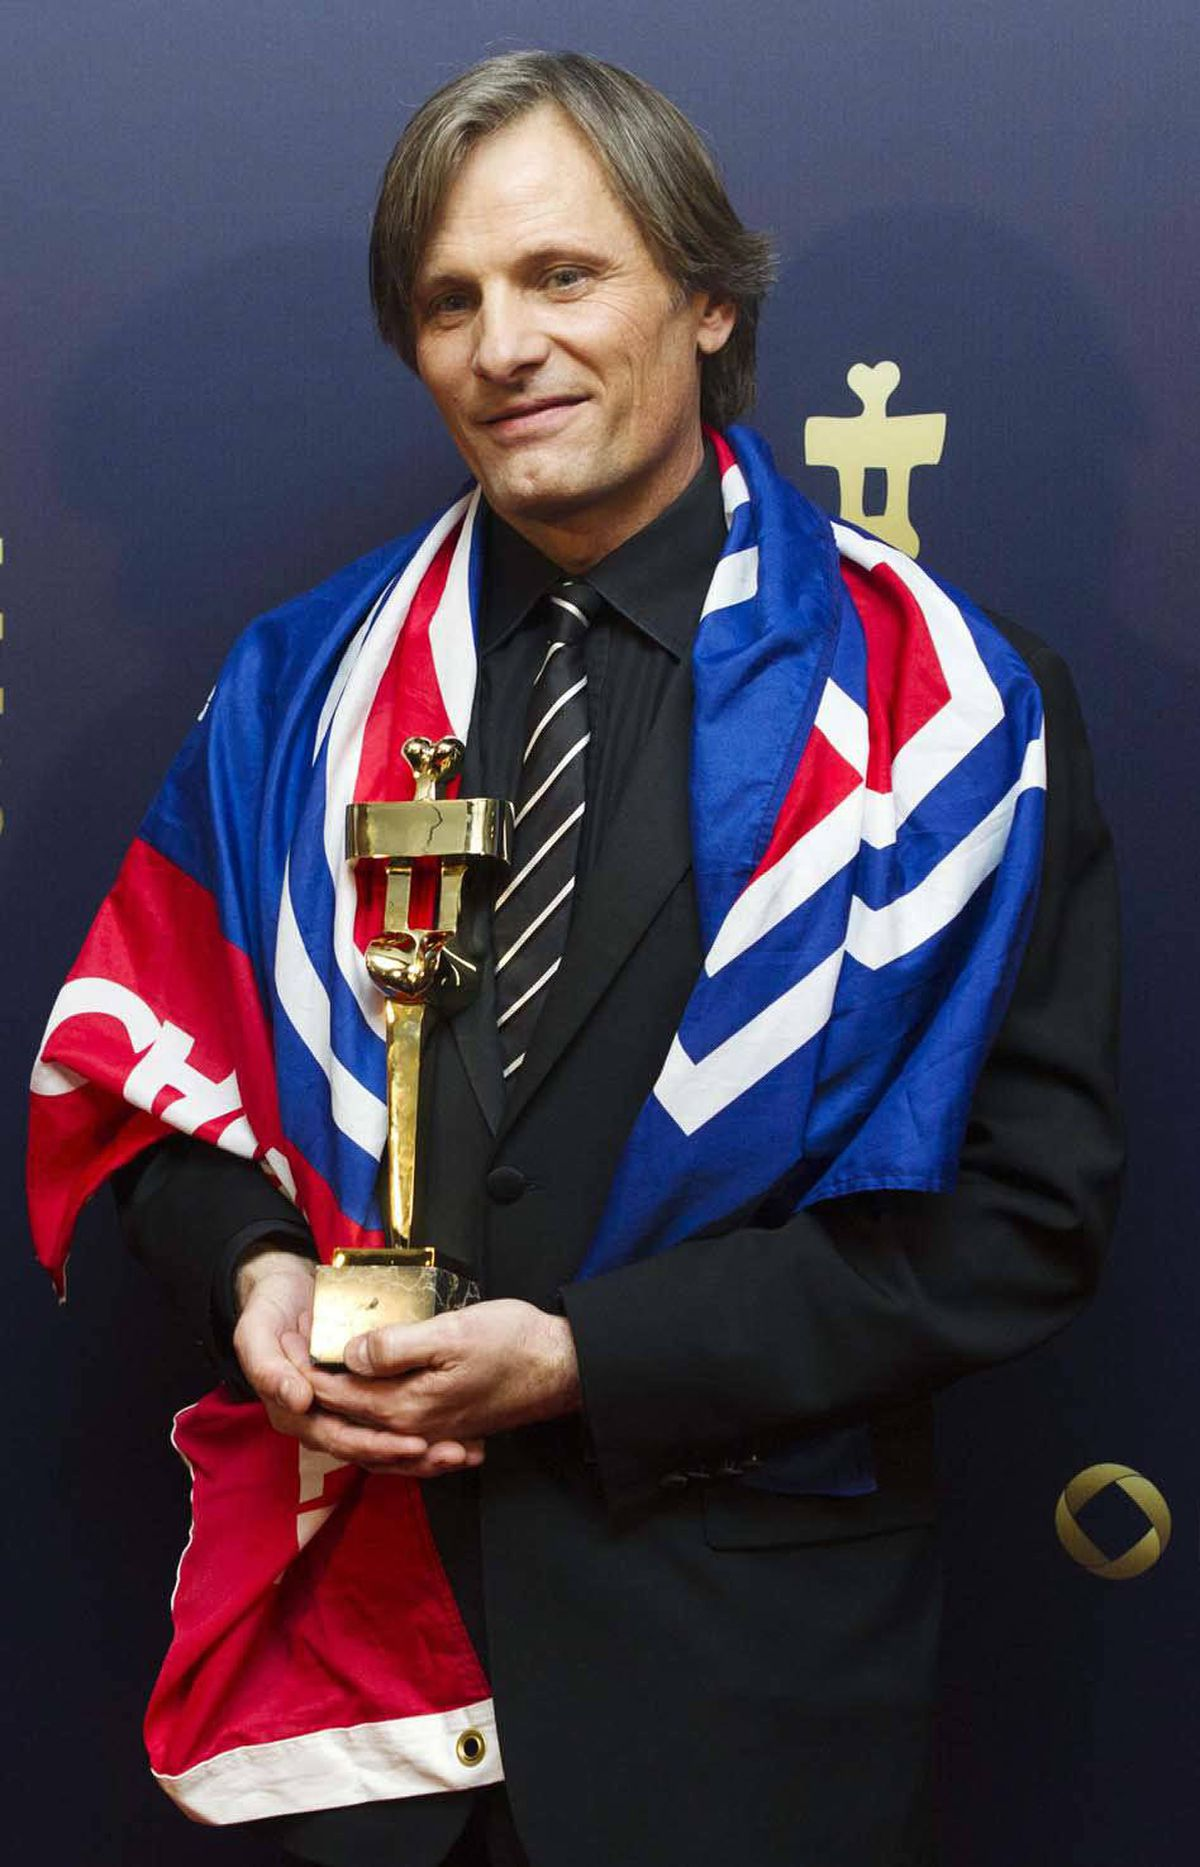 Later, Viggo Mortensen could barely contain his joy as he posed with the Genie for best supporting actor at the Genie Awards in Toronto last week.